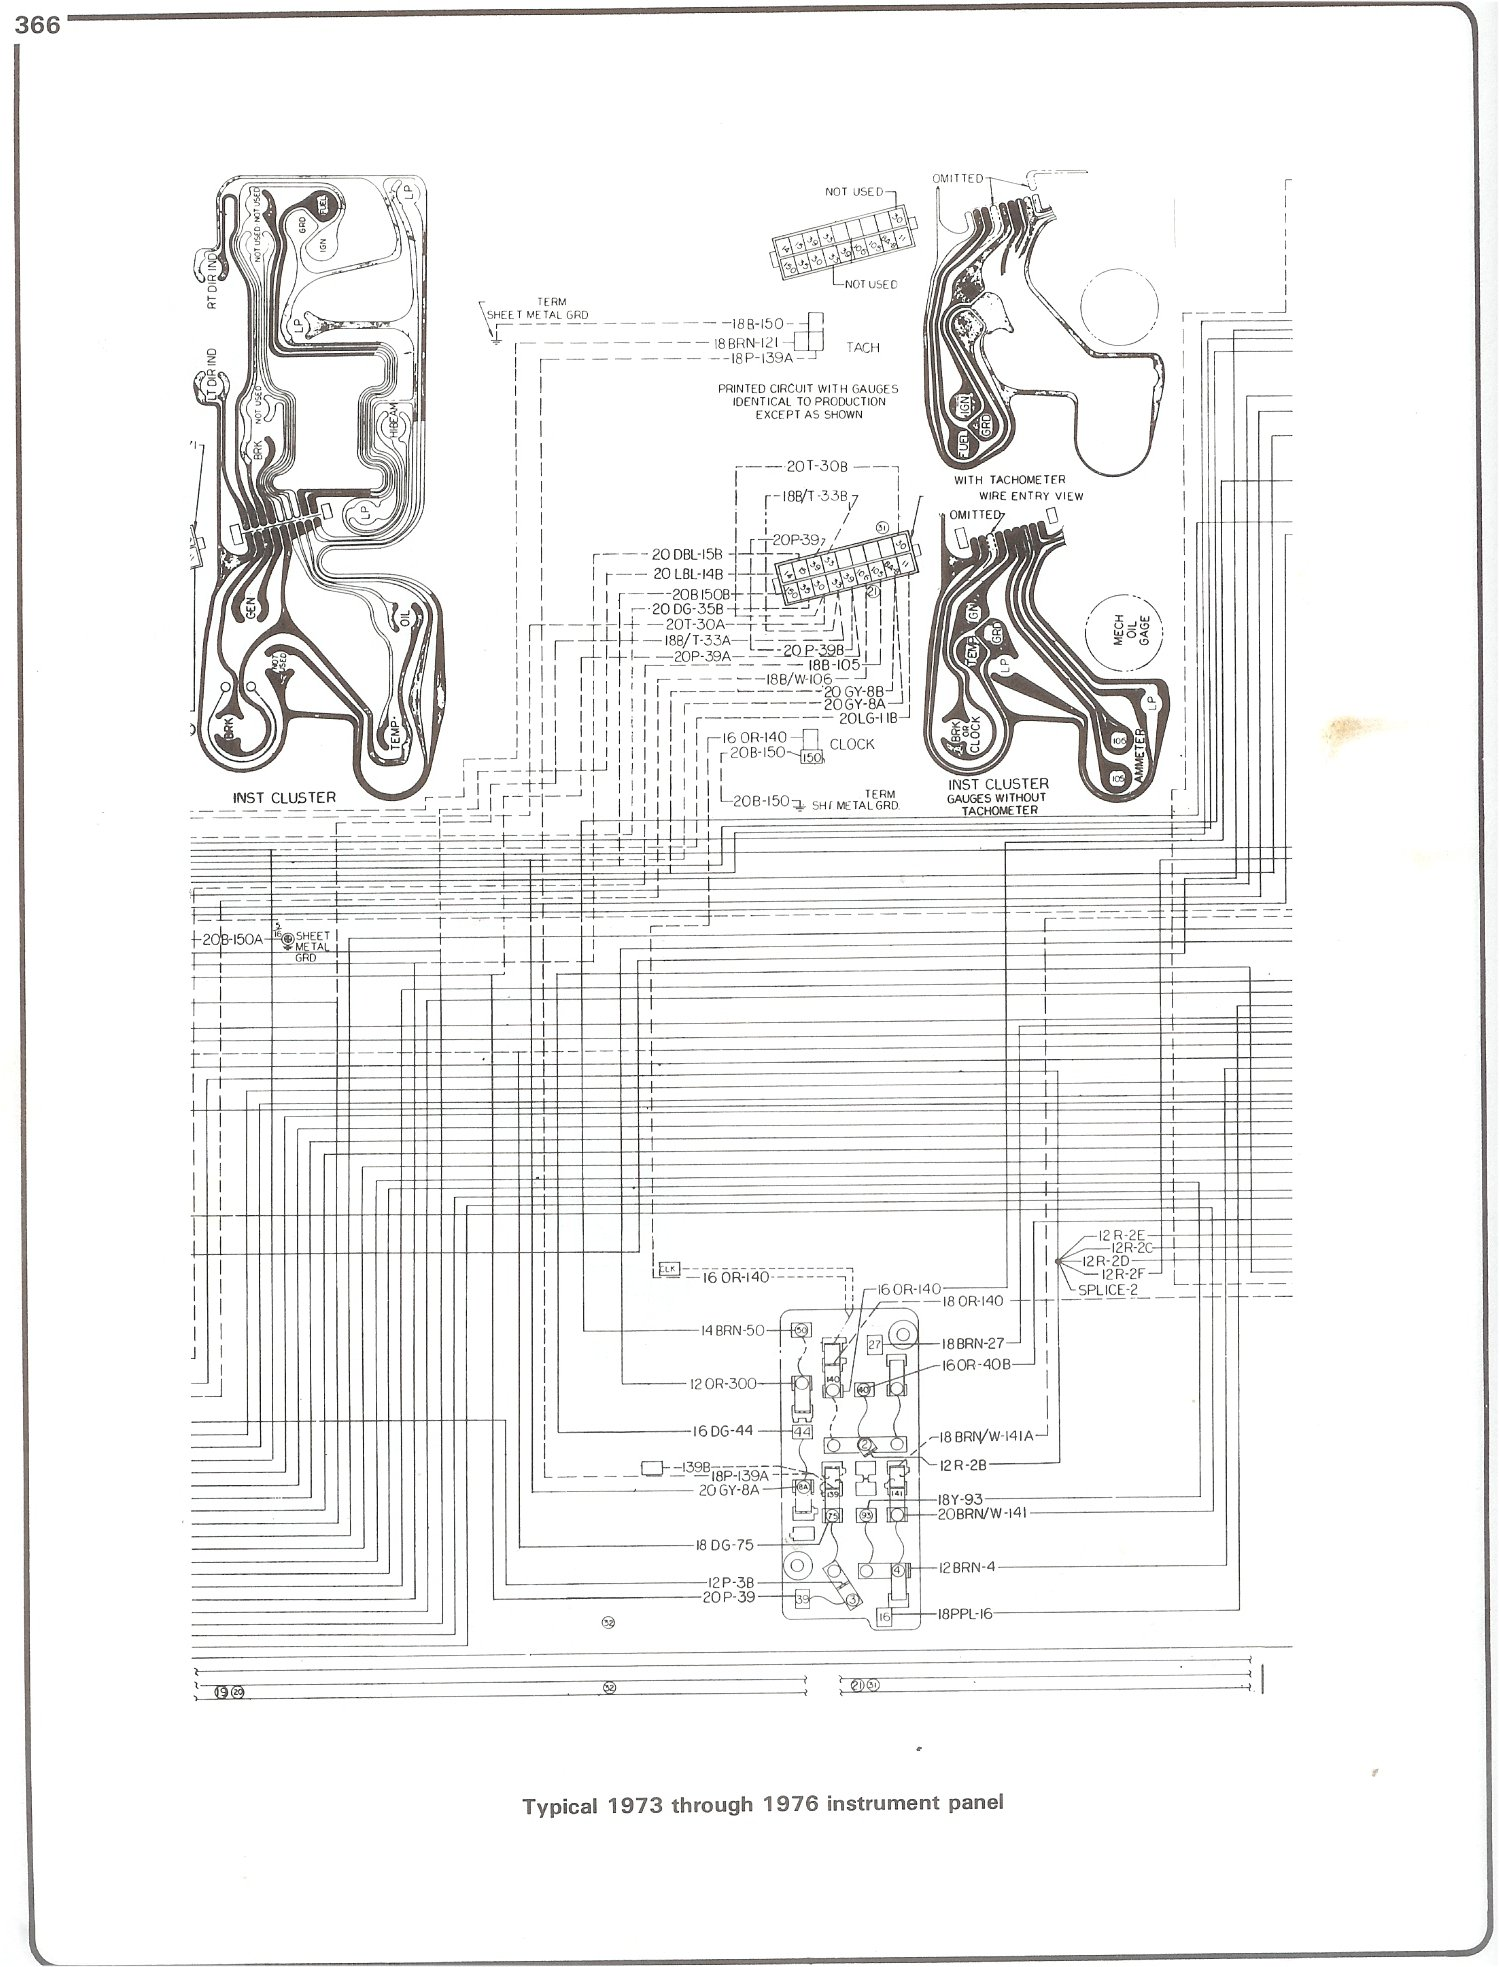 complete 73 87 wiring diagrams rh forum 73 87chevytrucks com 91 chevy silverado  wiring diagram 95 chevrolet